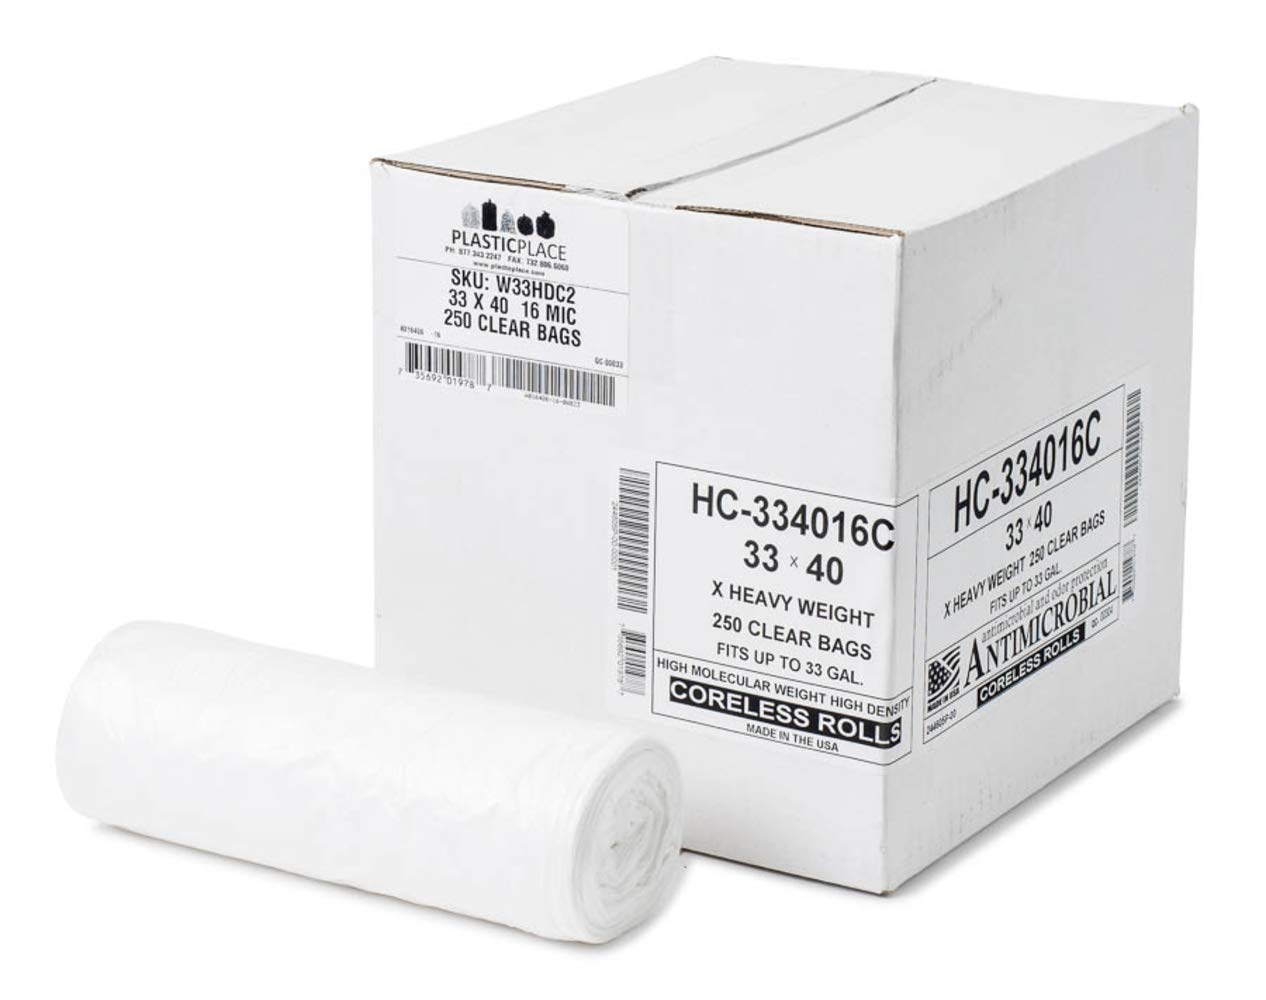 Plasticplace 33 Gallon Trash Bags, Clear, High Density 33'' X 40'' 250/Case 16 Microns by Plasticplace